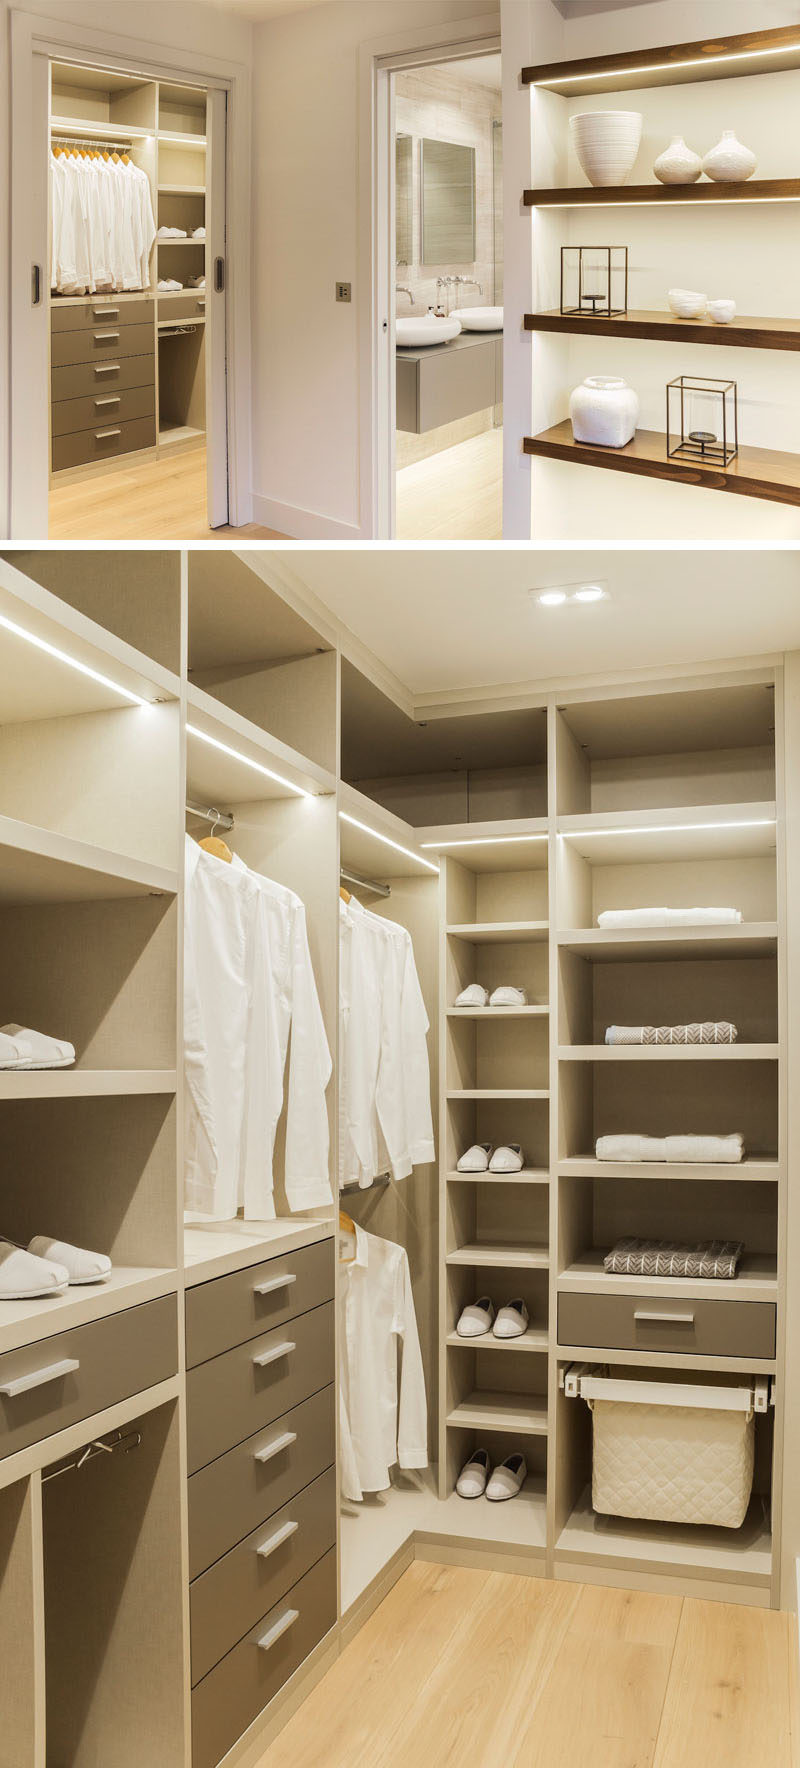 This modern walk-in closet features plenty of floor-to-ceiling storage and bright lighting. #WalkInCloset #Closet #InteriorDesign